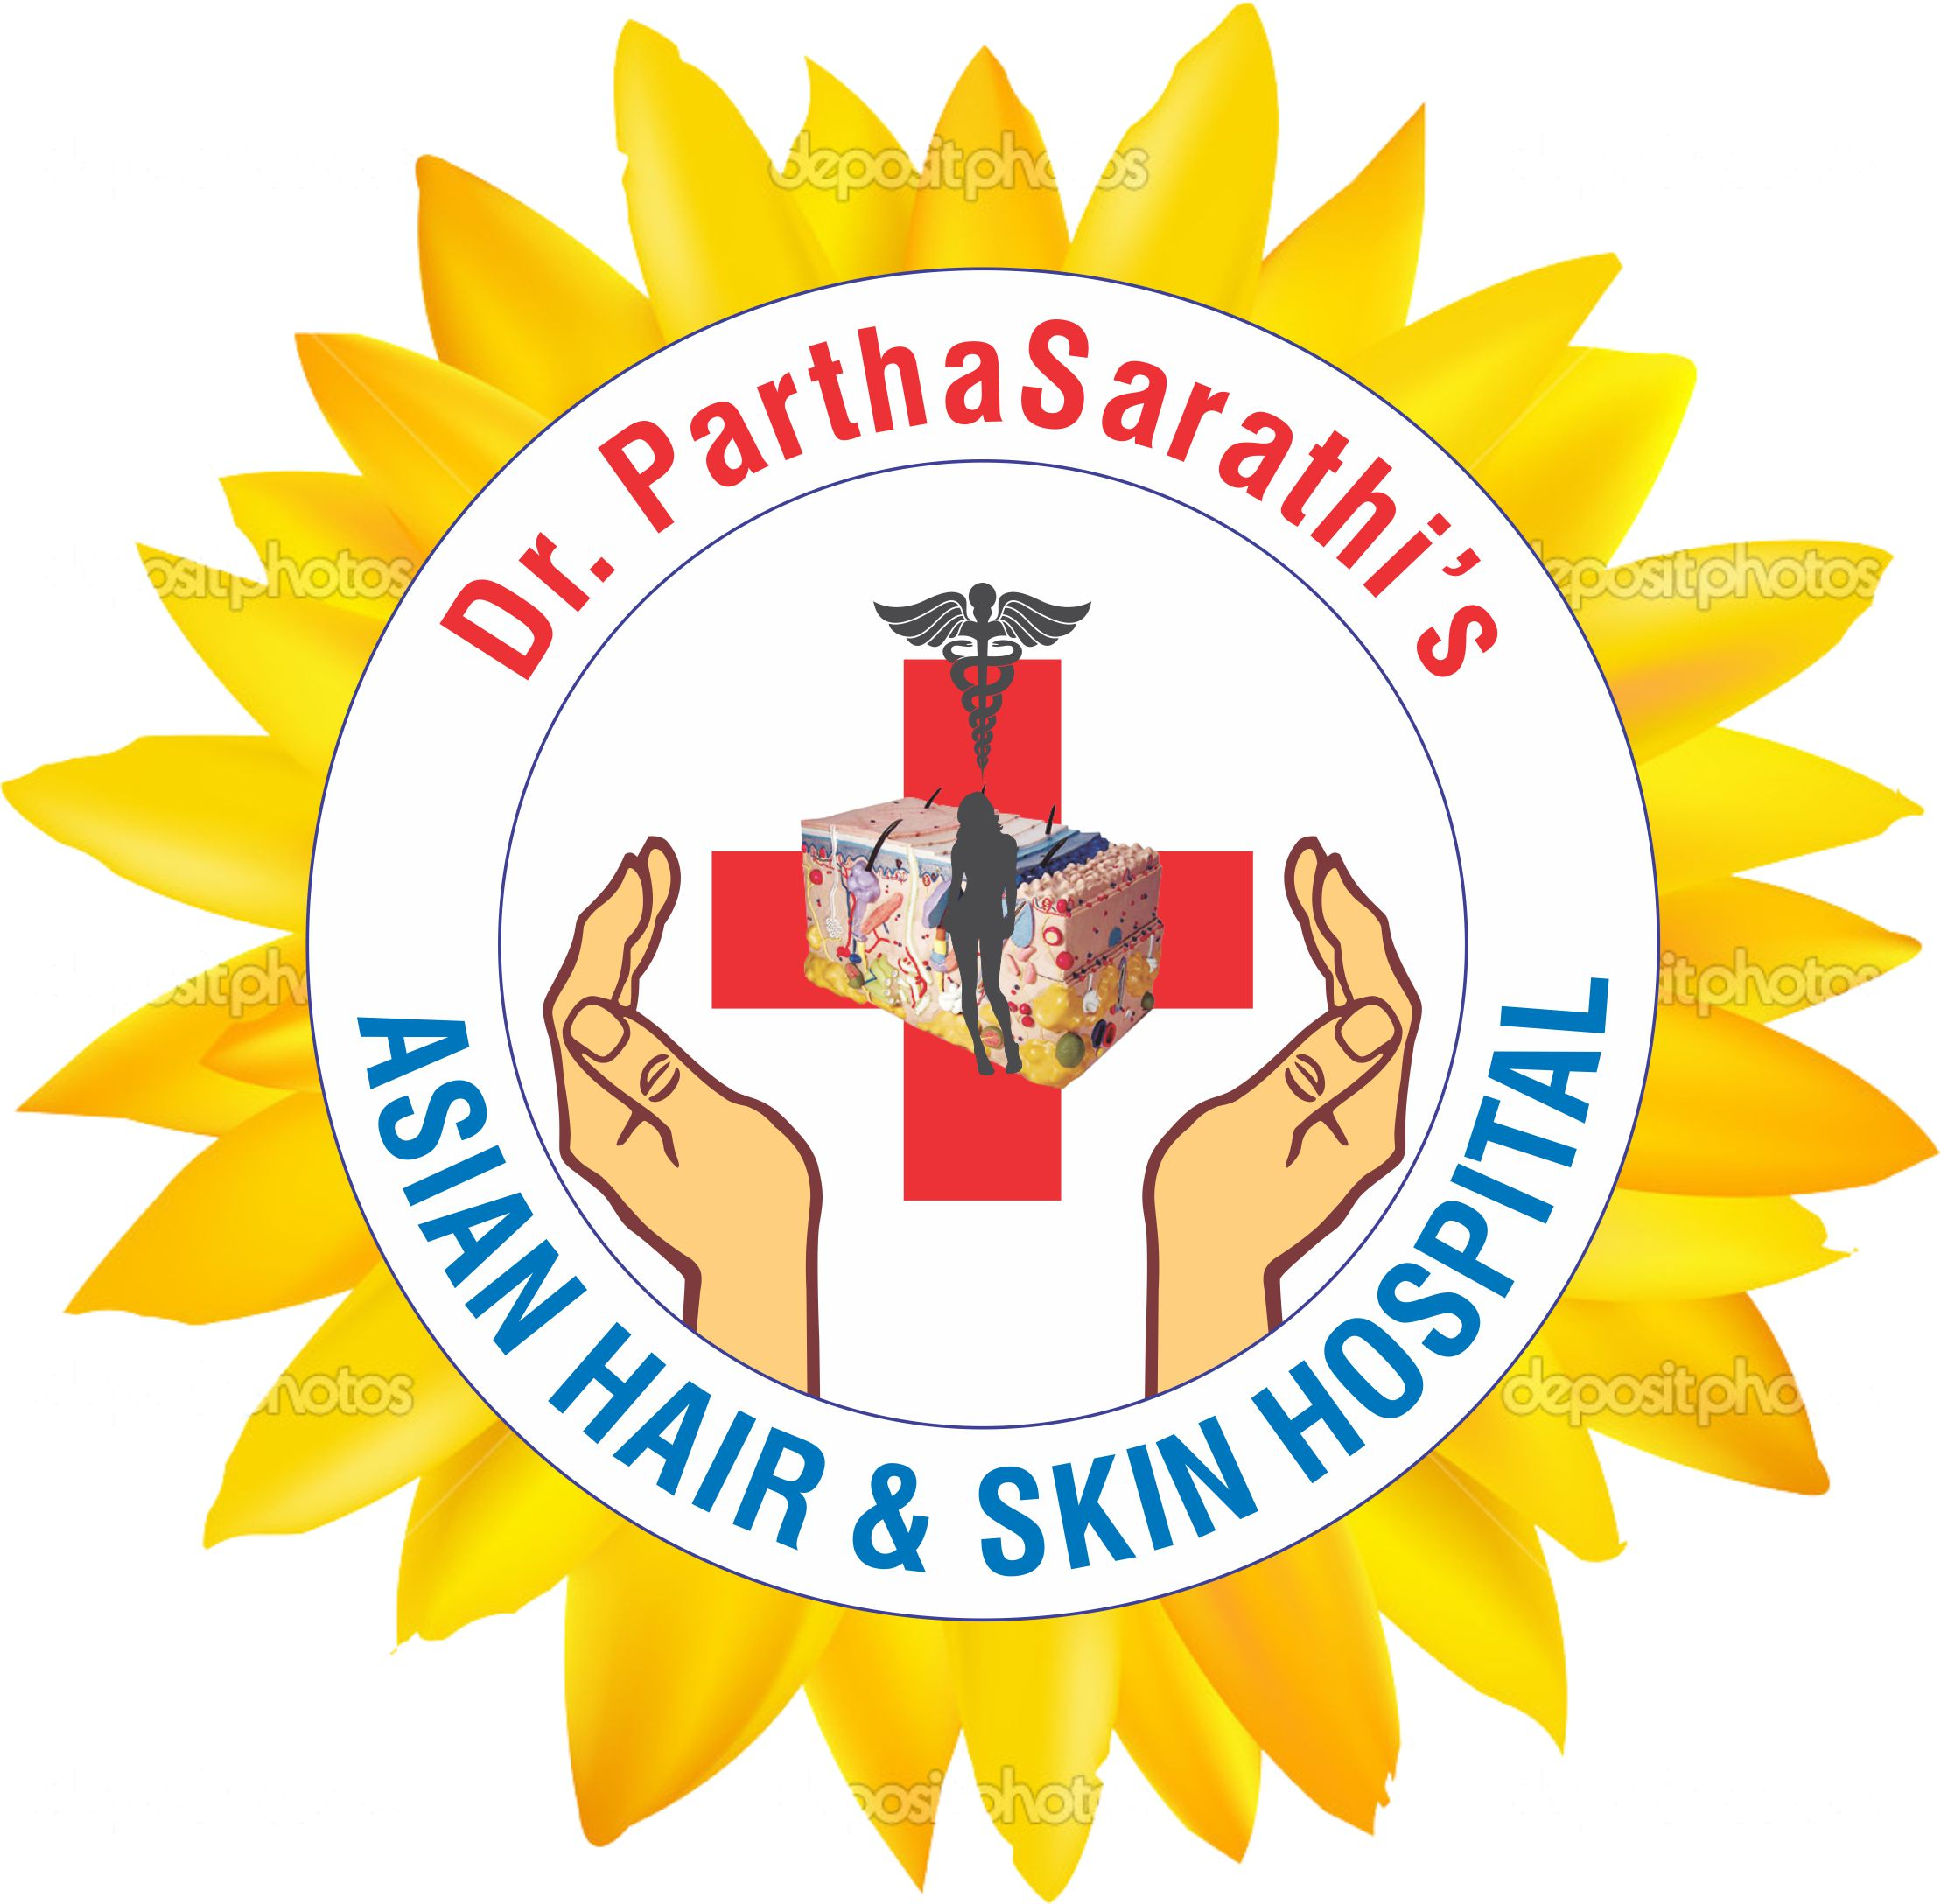 Dr. Parthasarathi's Asian Hair and Skin Hospitals